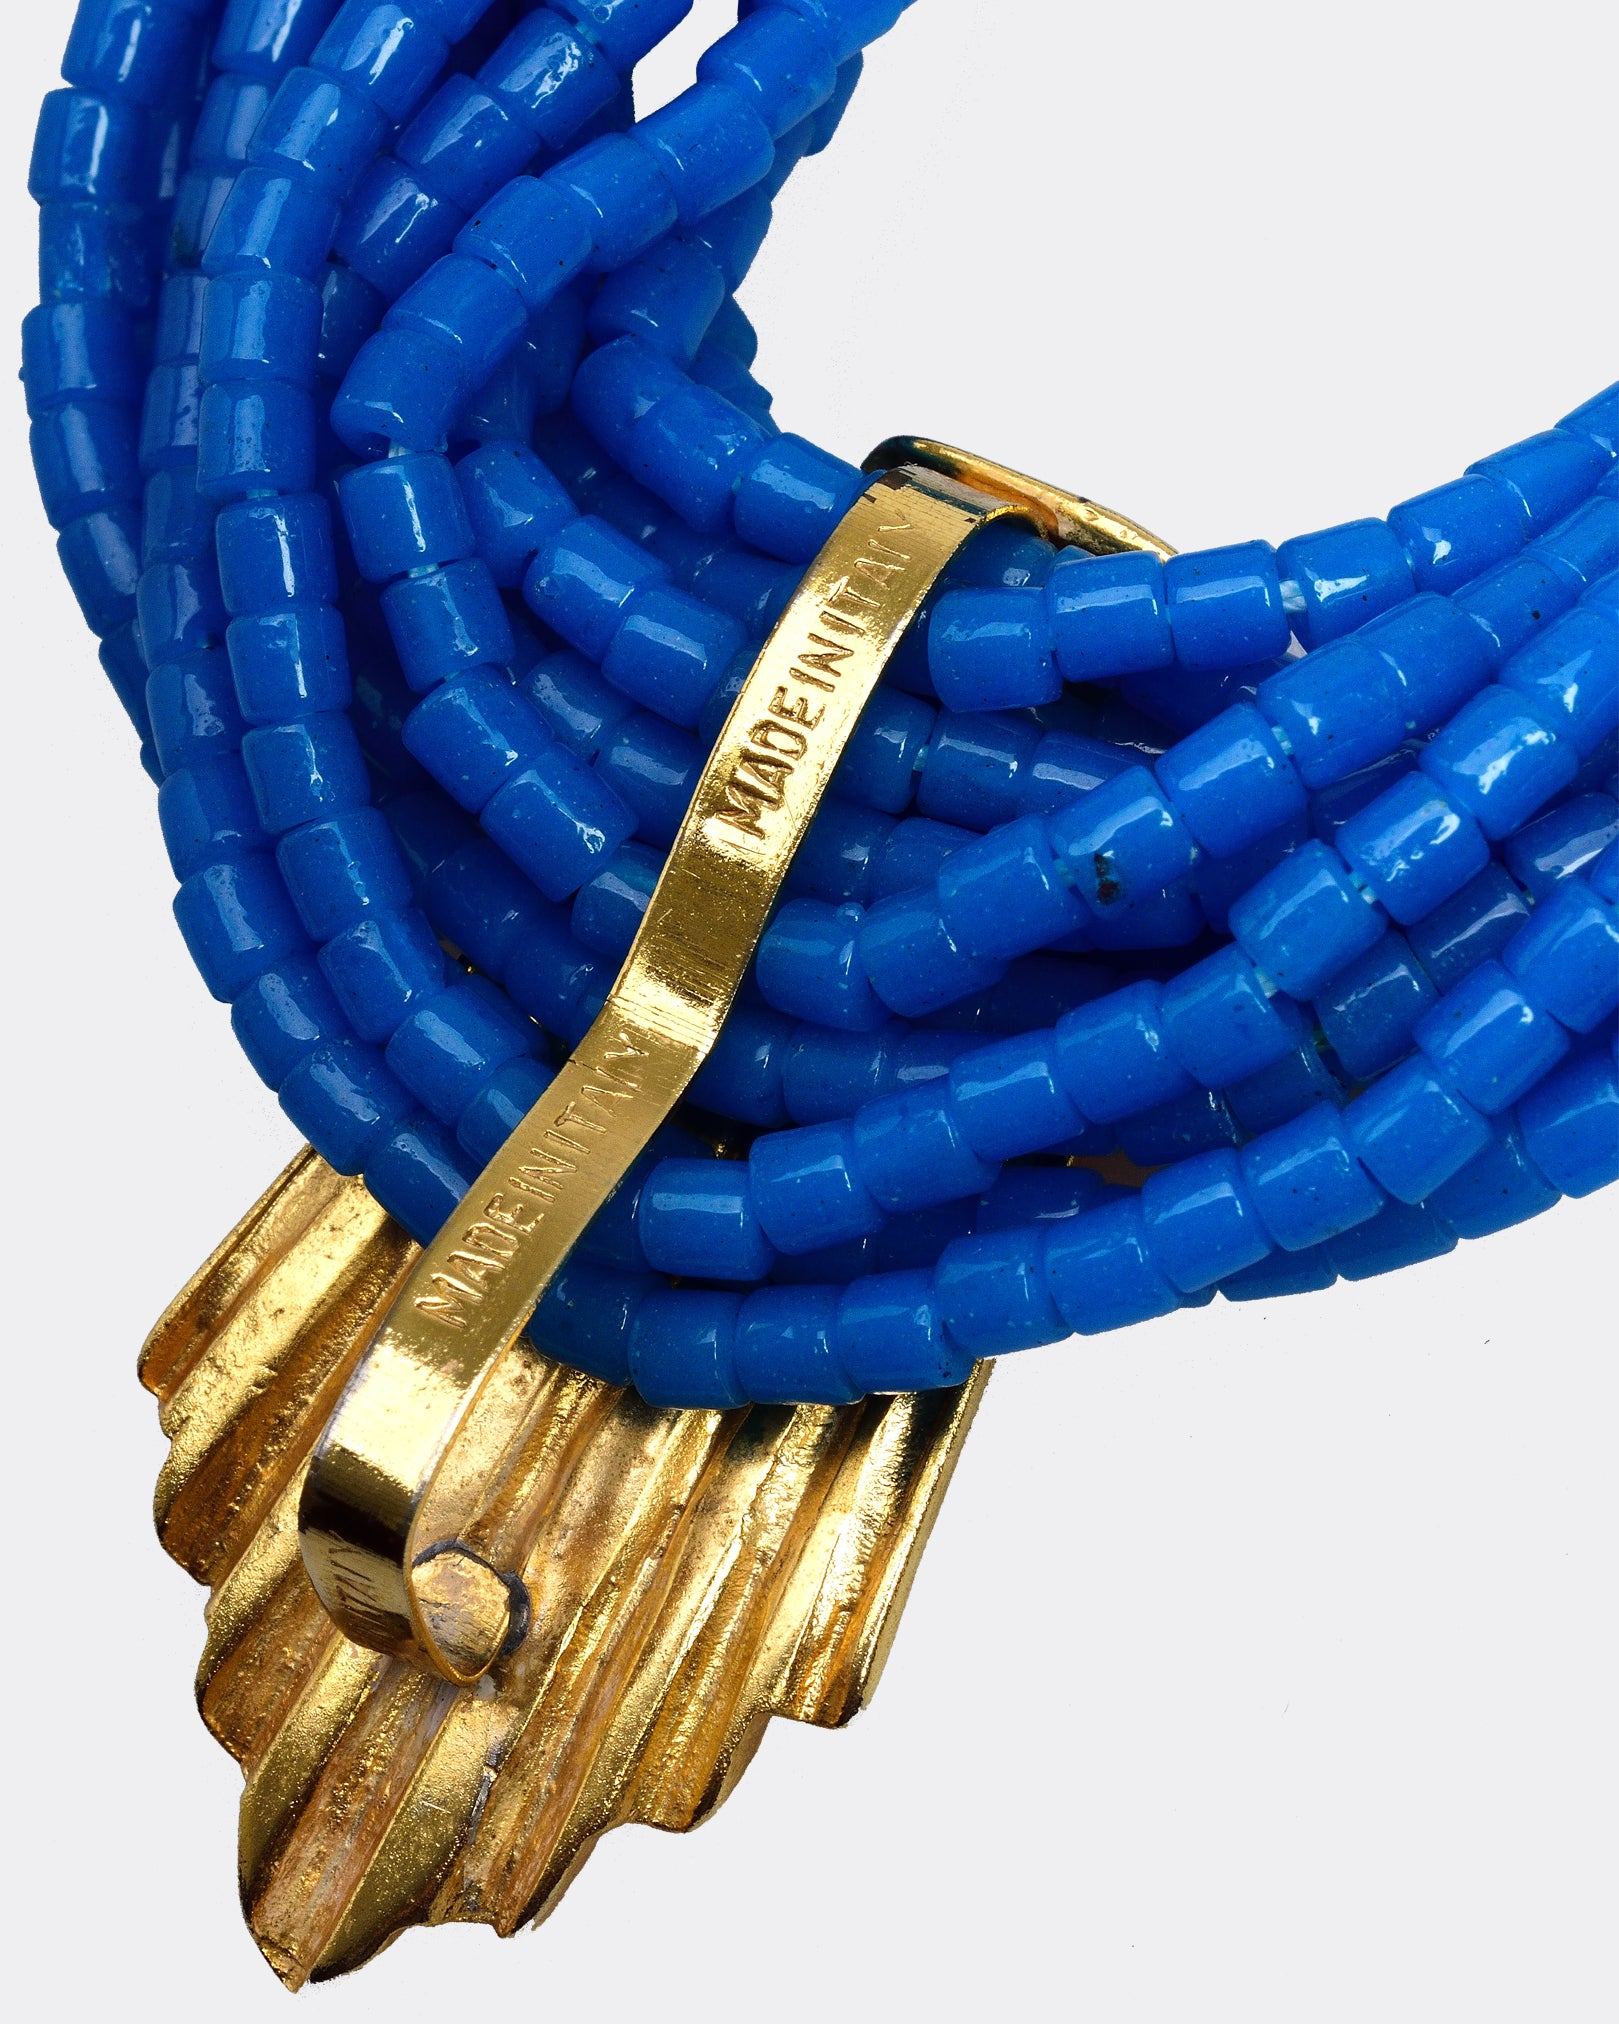 UGO CORREANI 1980s Blue Beads Vintage Choker Necklace